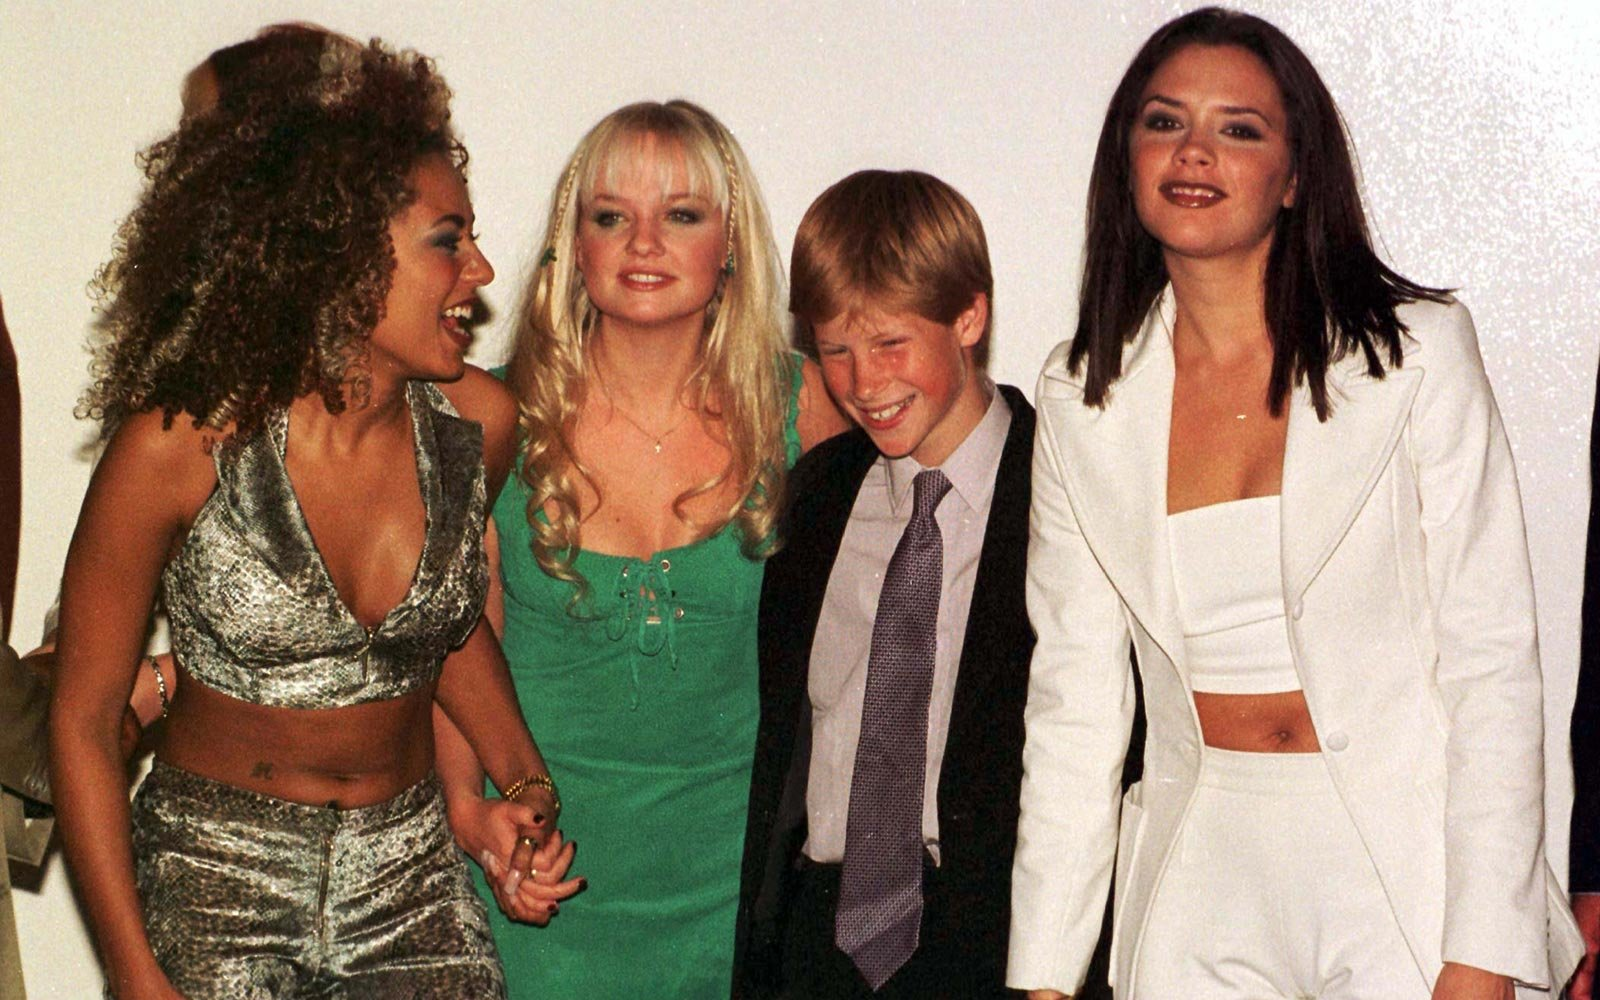 Prince Harry Spice Girls Concert